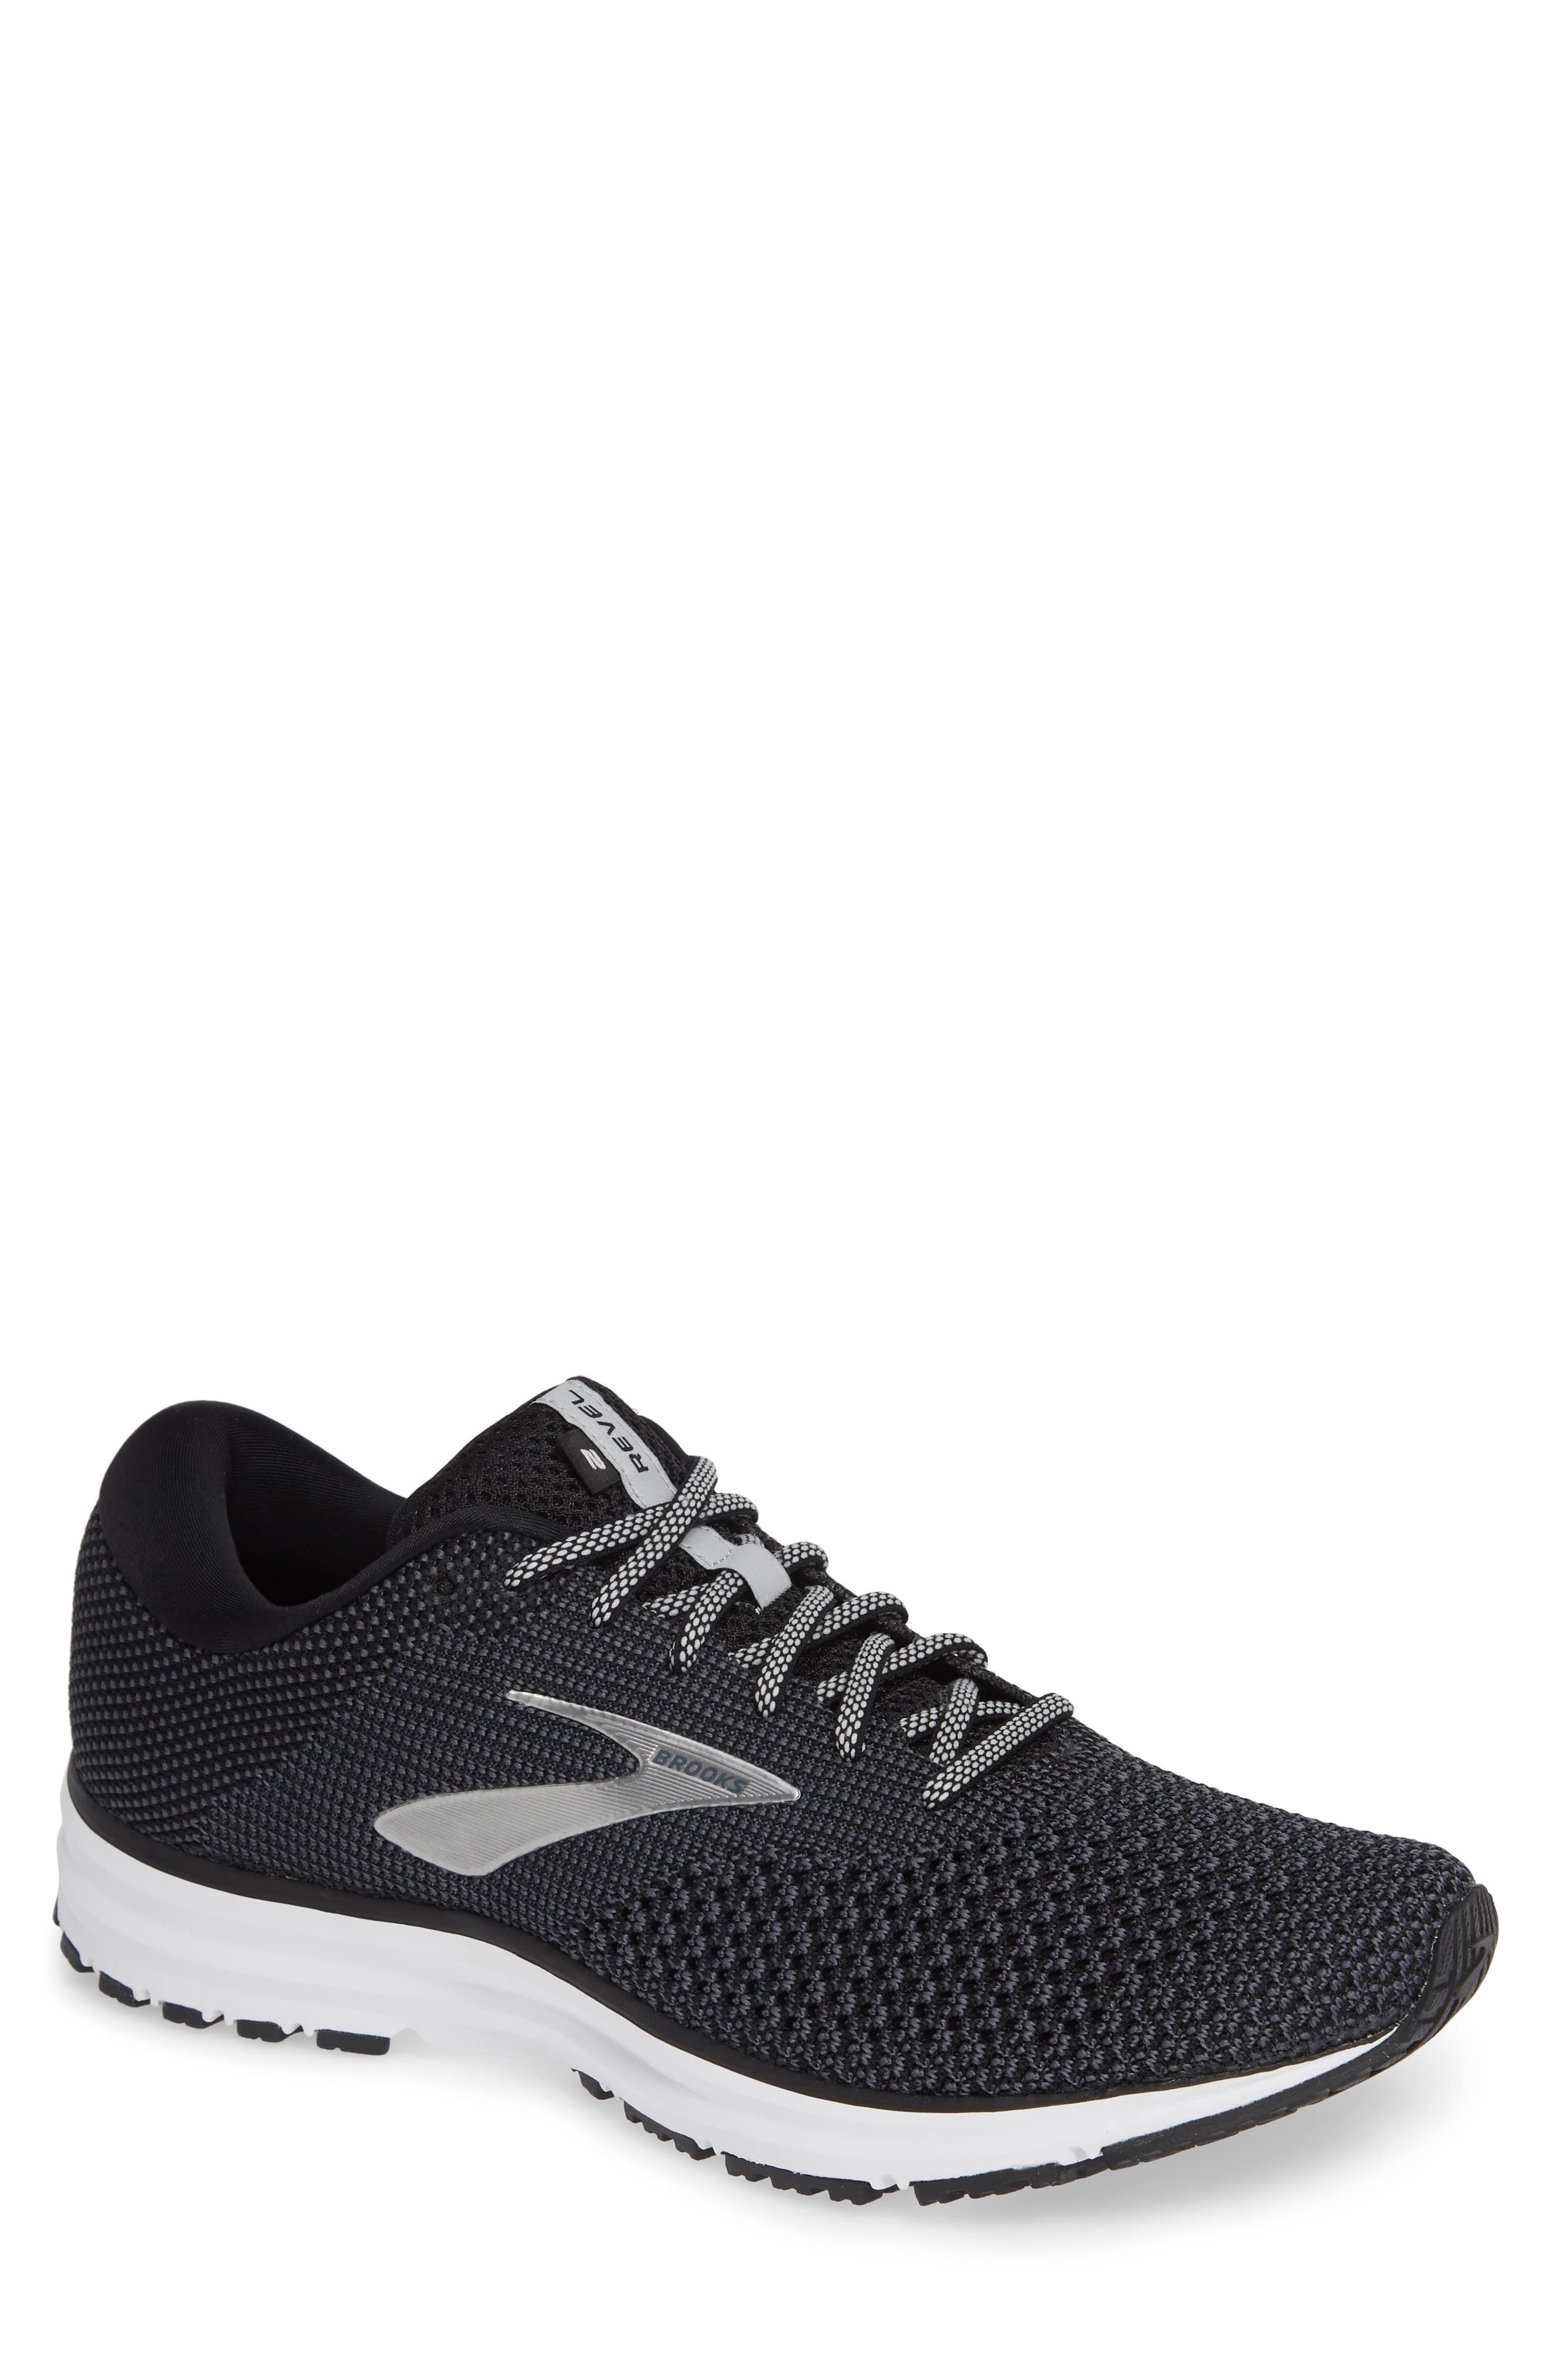 cheap for discount d824d f55dd Brooks Revel 2 Running Shoe in 2019 | Products | Brooks ...